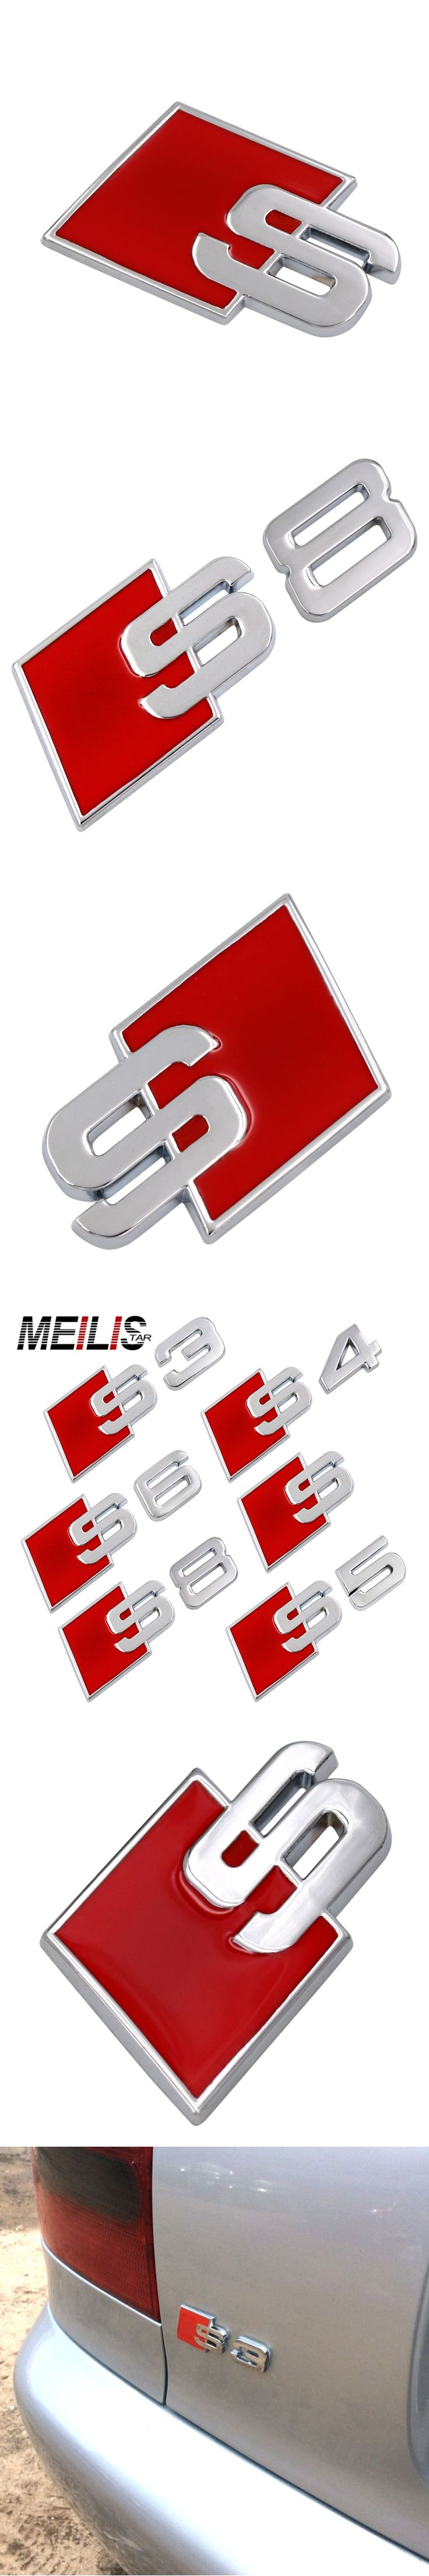 S LINE S3 S4 S5 S6 S8 logo Emblem Badge metal auto tail 3D stickers For AUDI A1 A3 A4 A5 A6 A7 A8 Q3 Q5 Q7 R8 TT RS car-styling